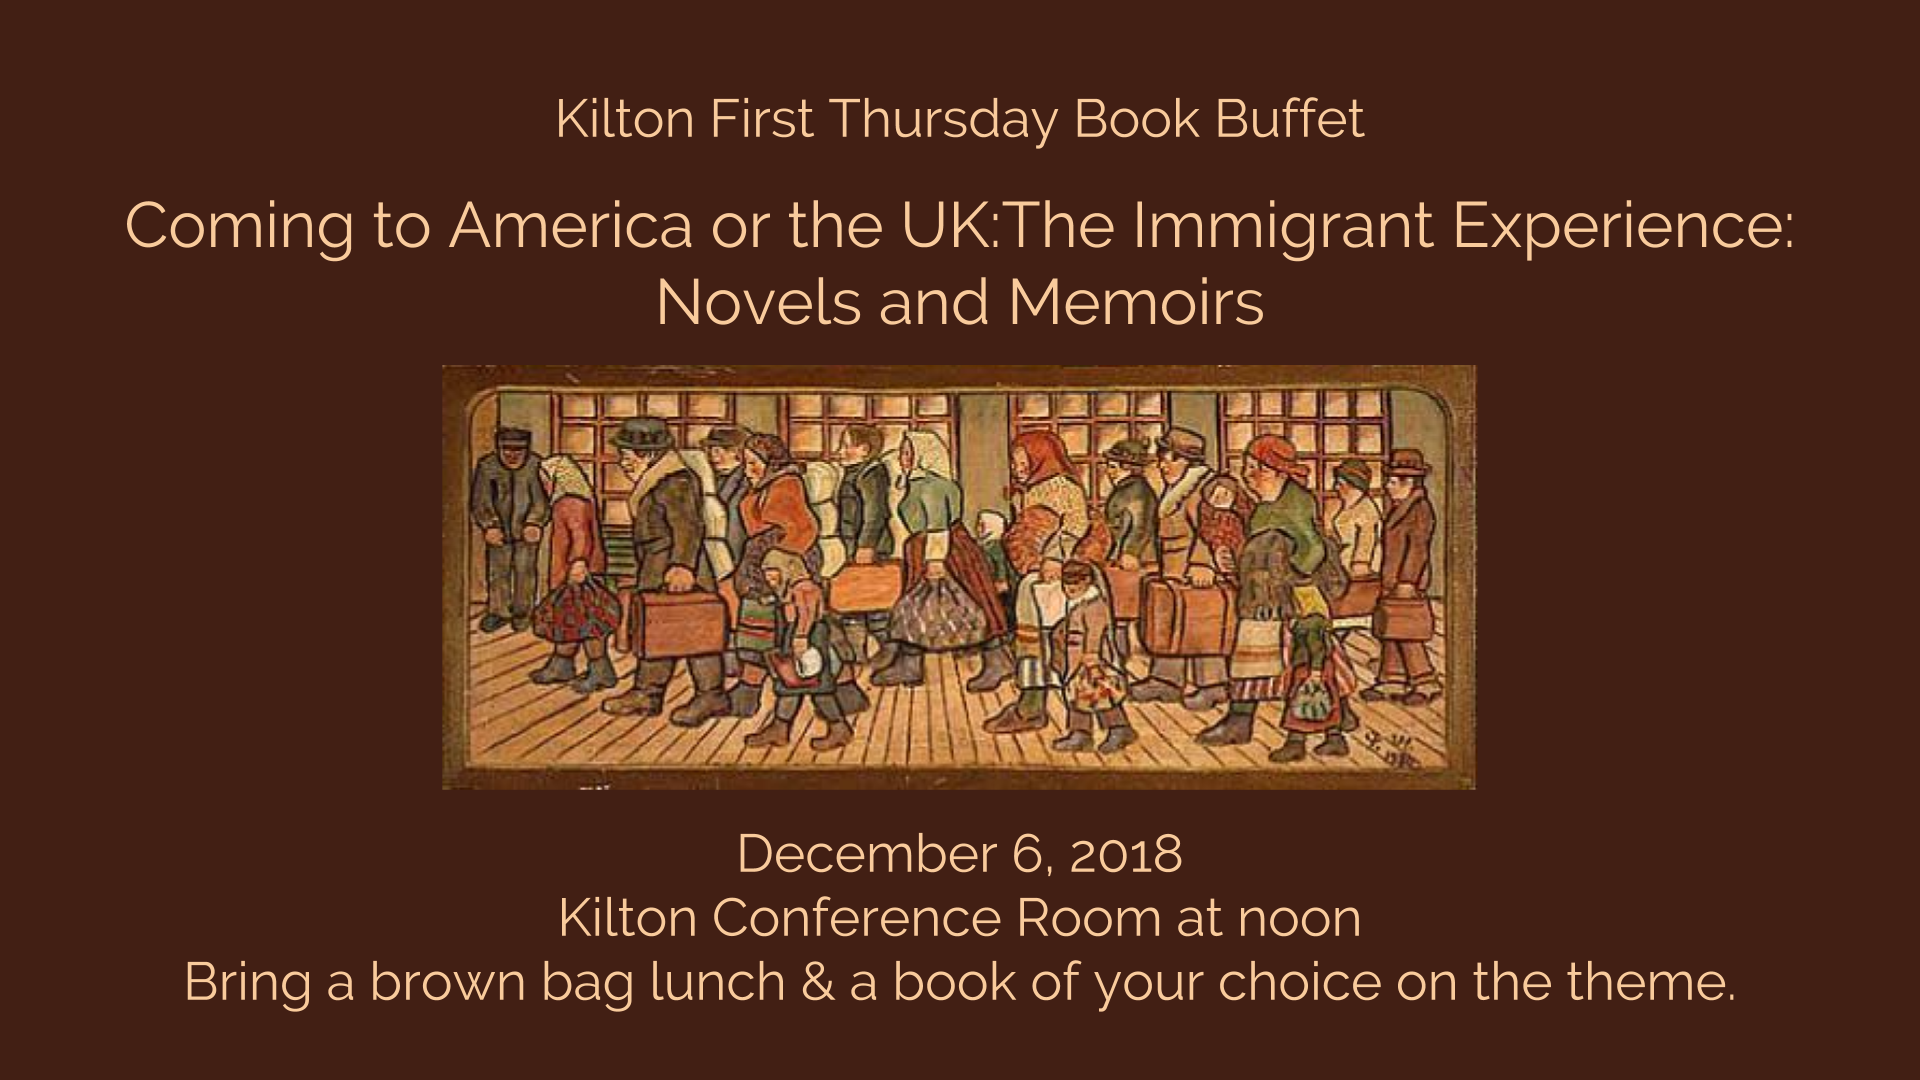 Kilton First Thursday Book Buffet   Coming to America or the UK:The Immigrant Experience: Novels and Memoirs            December 6, 2018 Kilton Conference Room at noon Bring a brown bag lunch & a book of your choice on the theme.